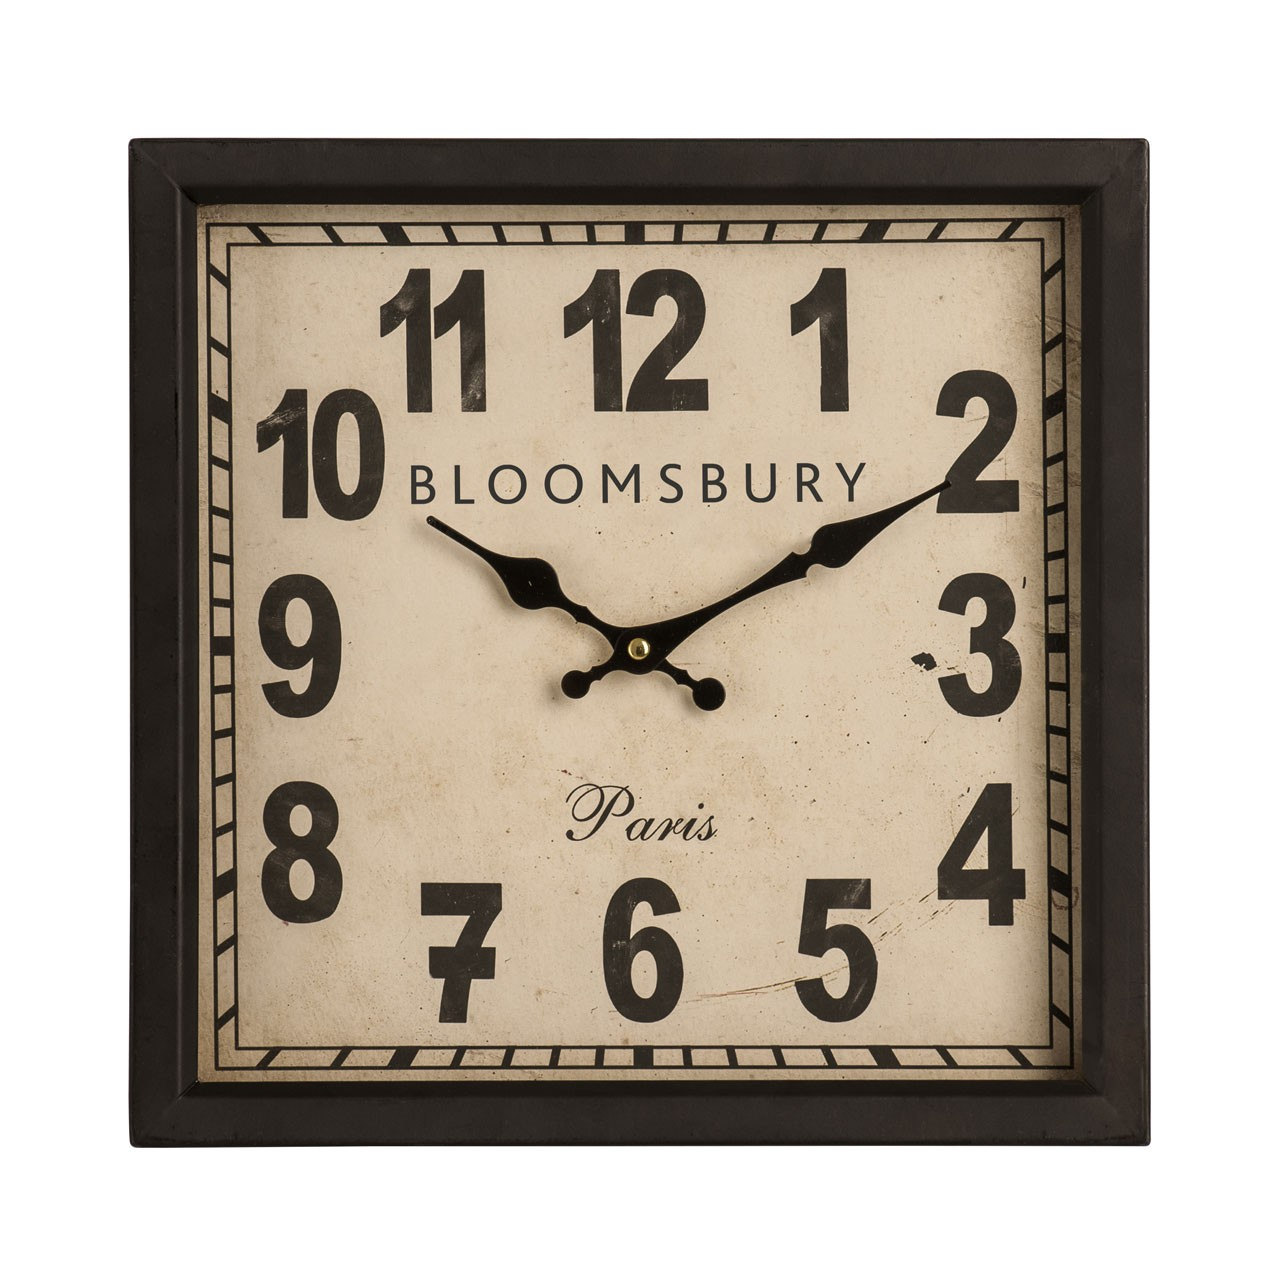 Prime Furnishing Wall Clock, Iron - Black